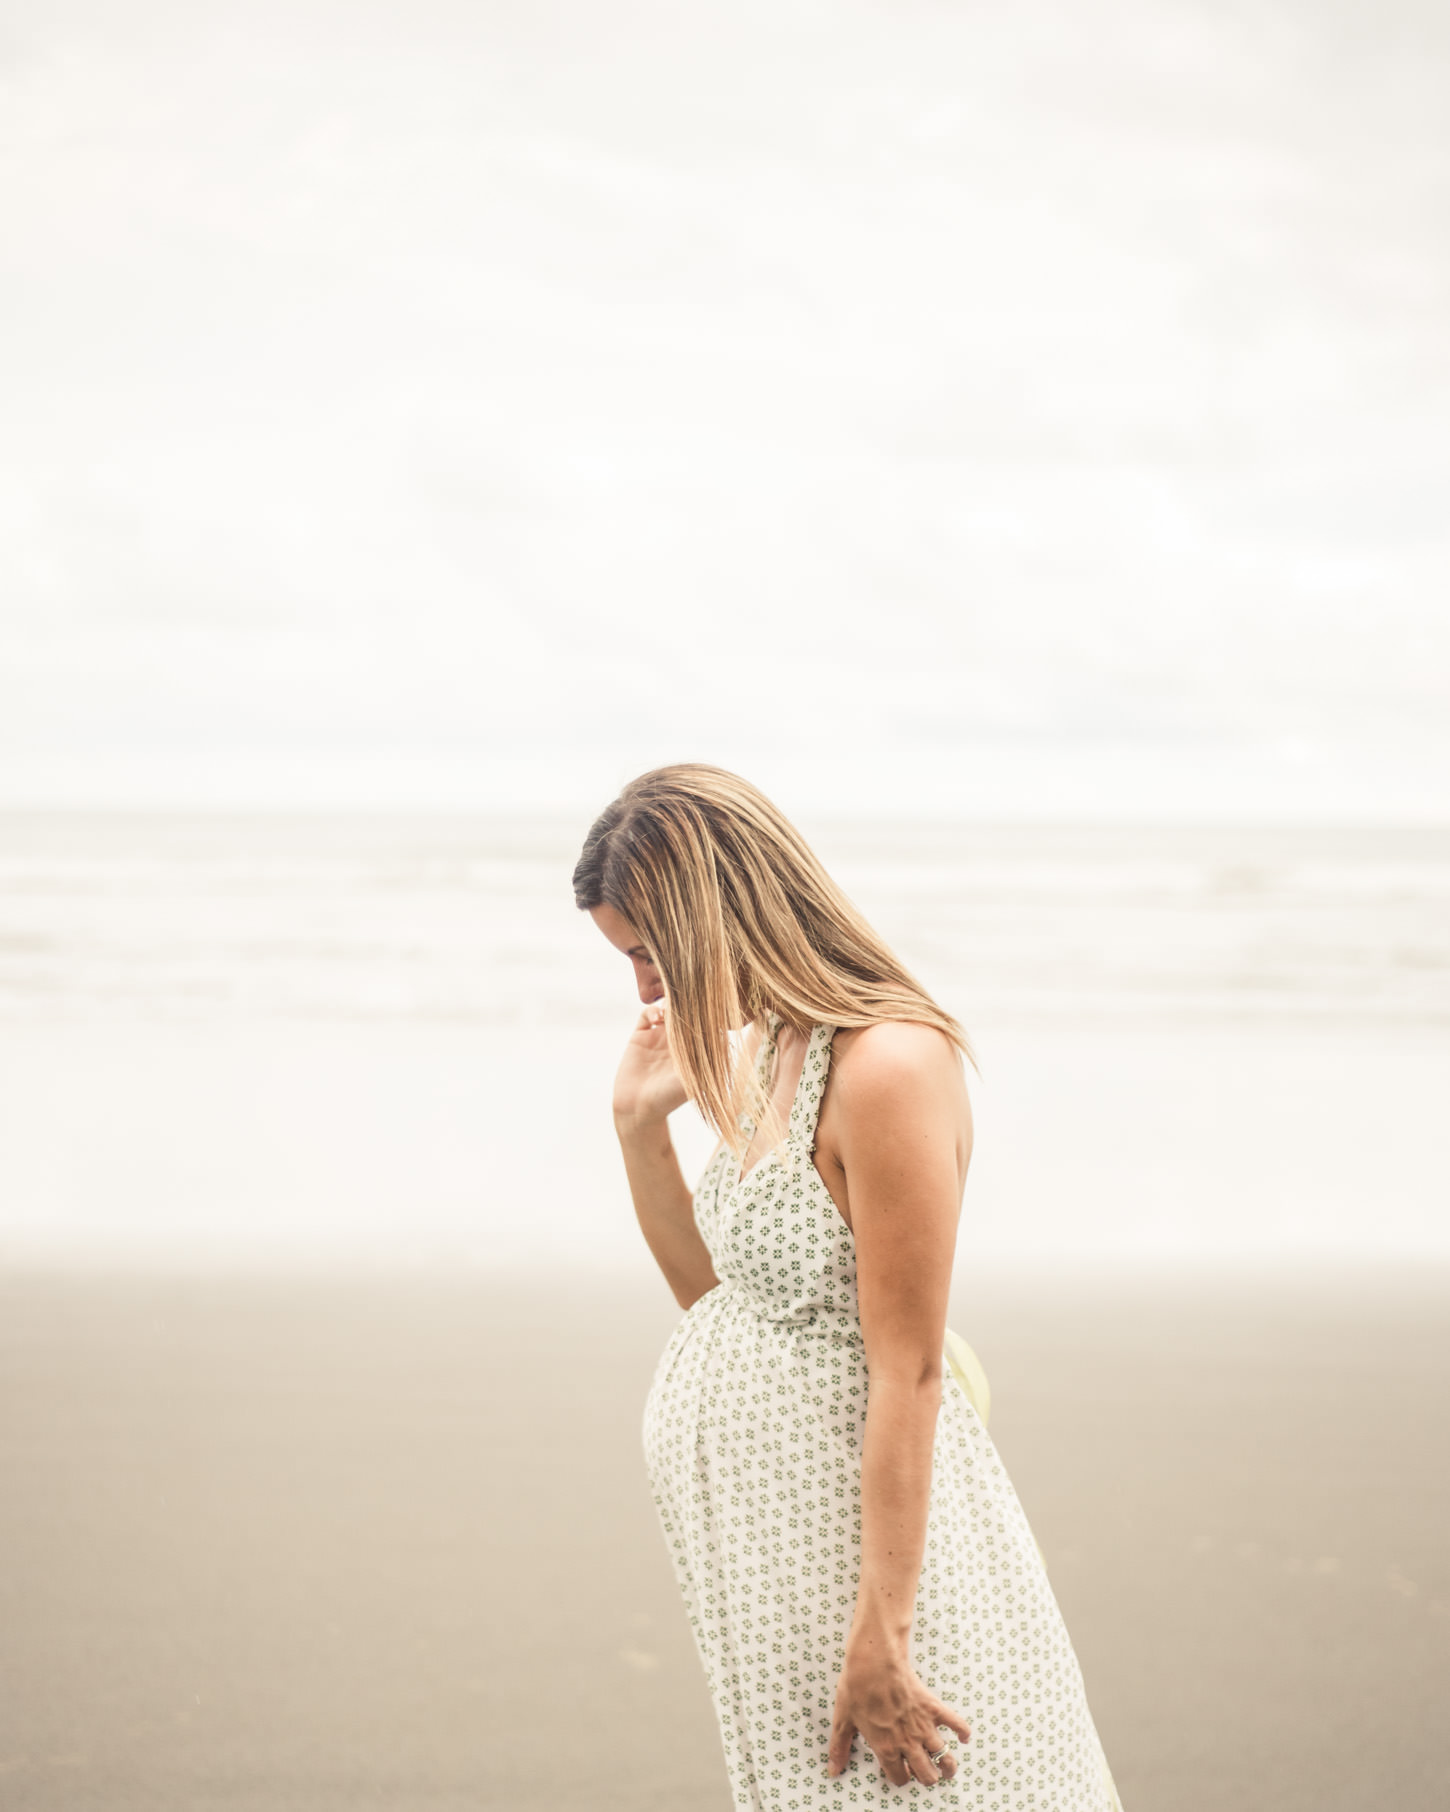 Fine art film maternity portraits by Victoria BC Photographer Christina Craft FunkyTown Photography